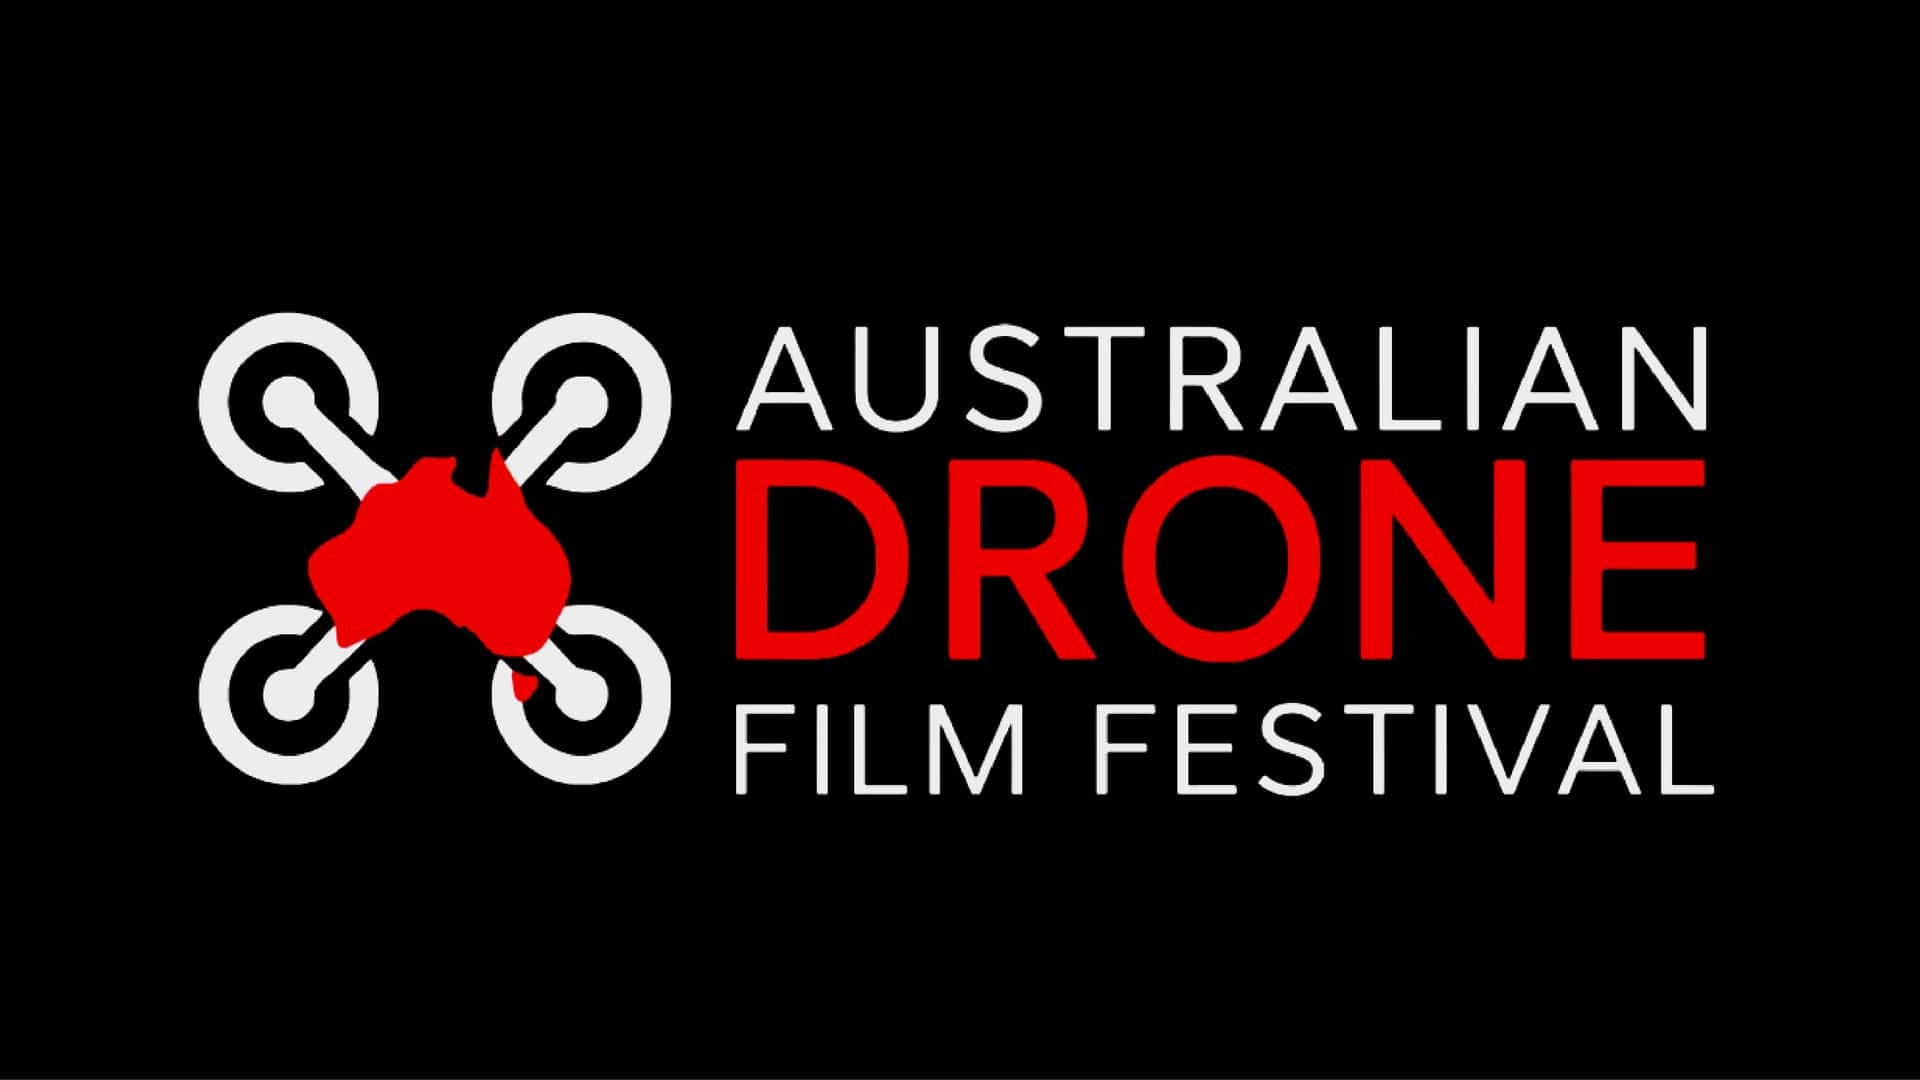 Australian Drone Film Festival To Premiere in April 2017